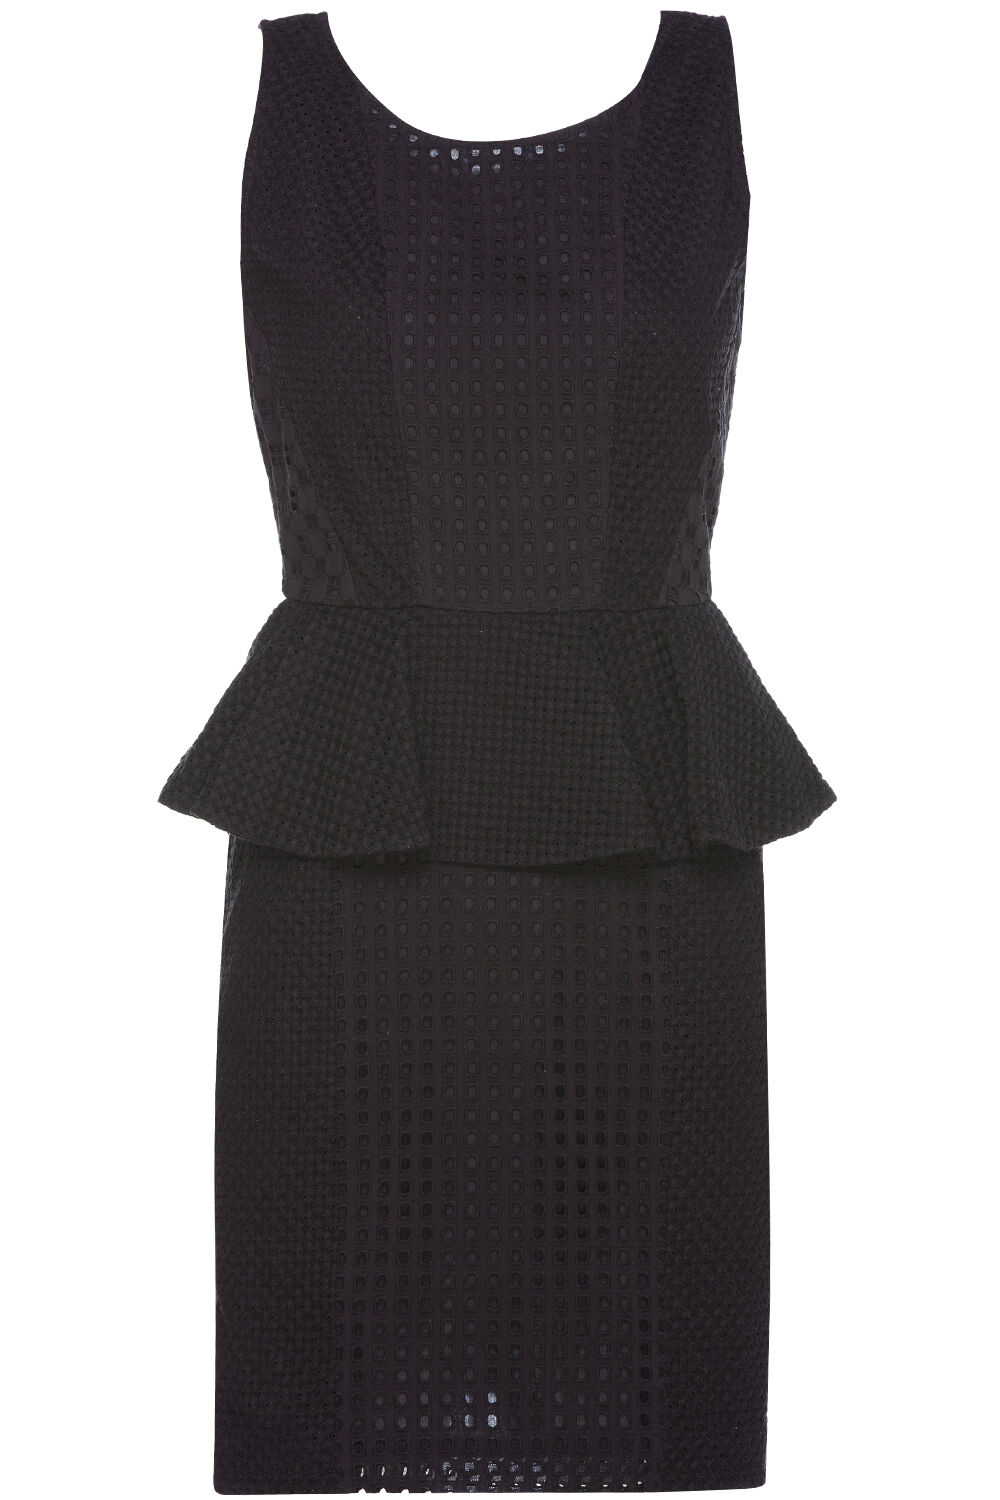 NWT  Rachel Zoe 'Paola' Cotton Eyelet Peplum Dress (SOLD OUT)  , size  0